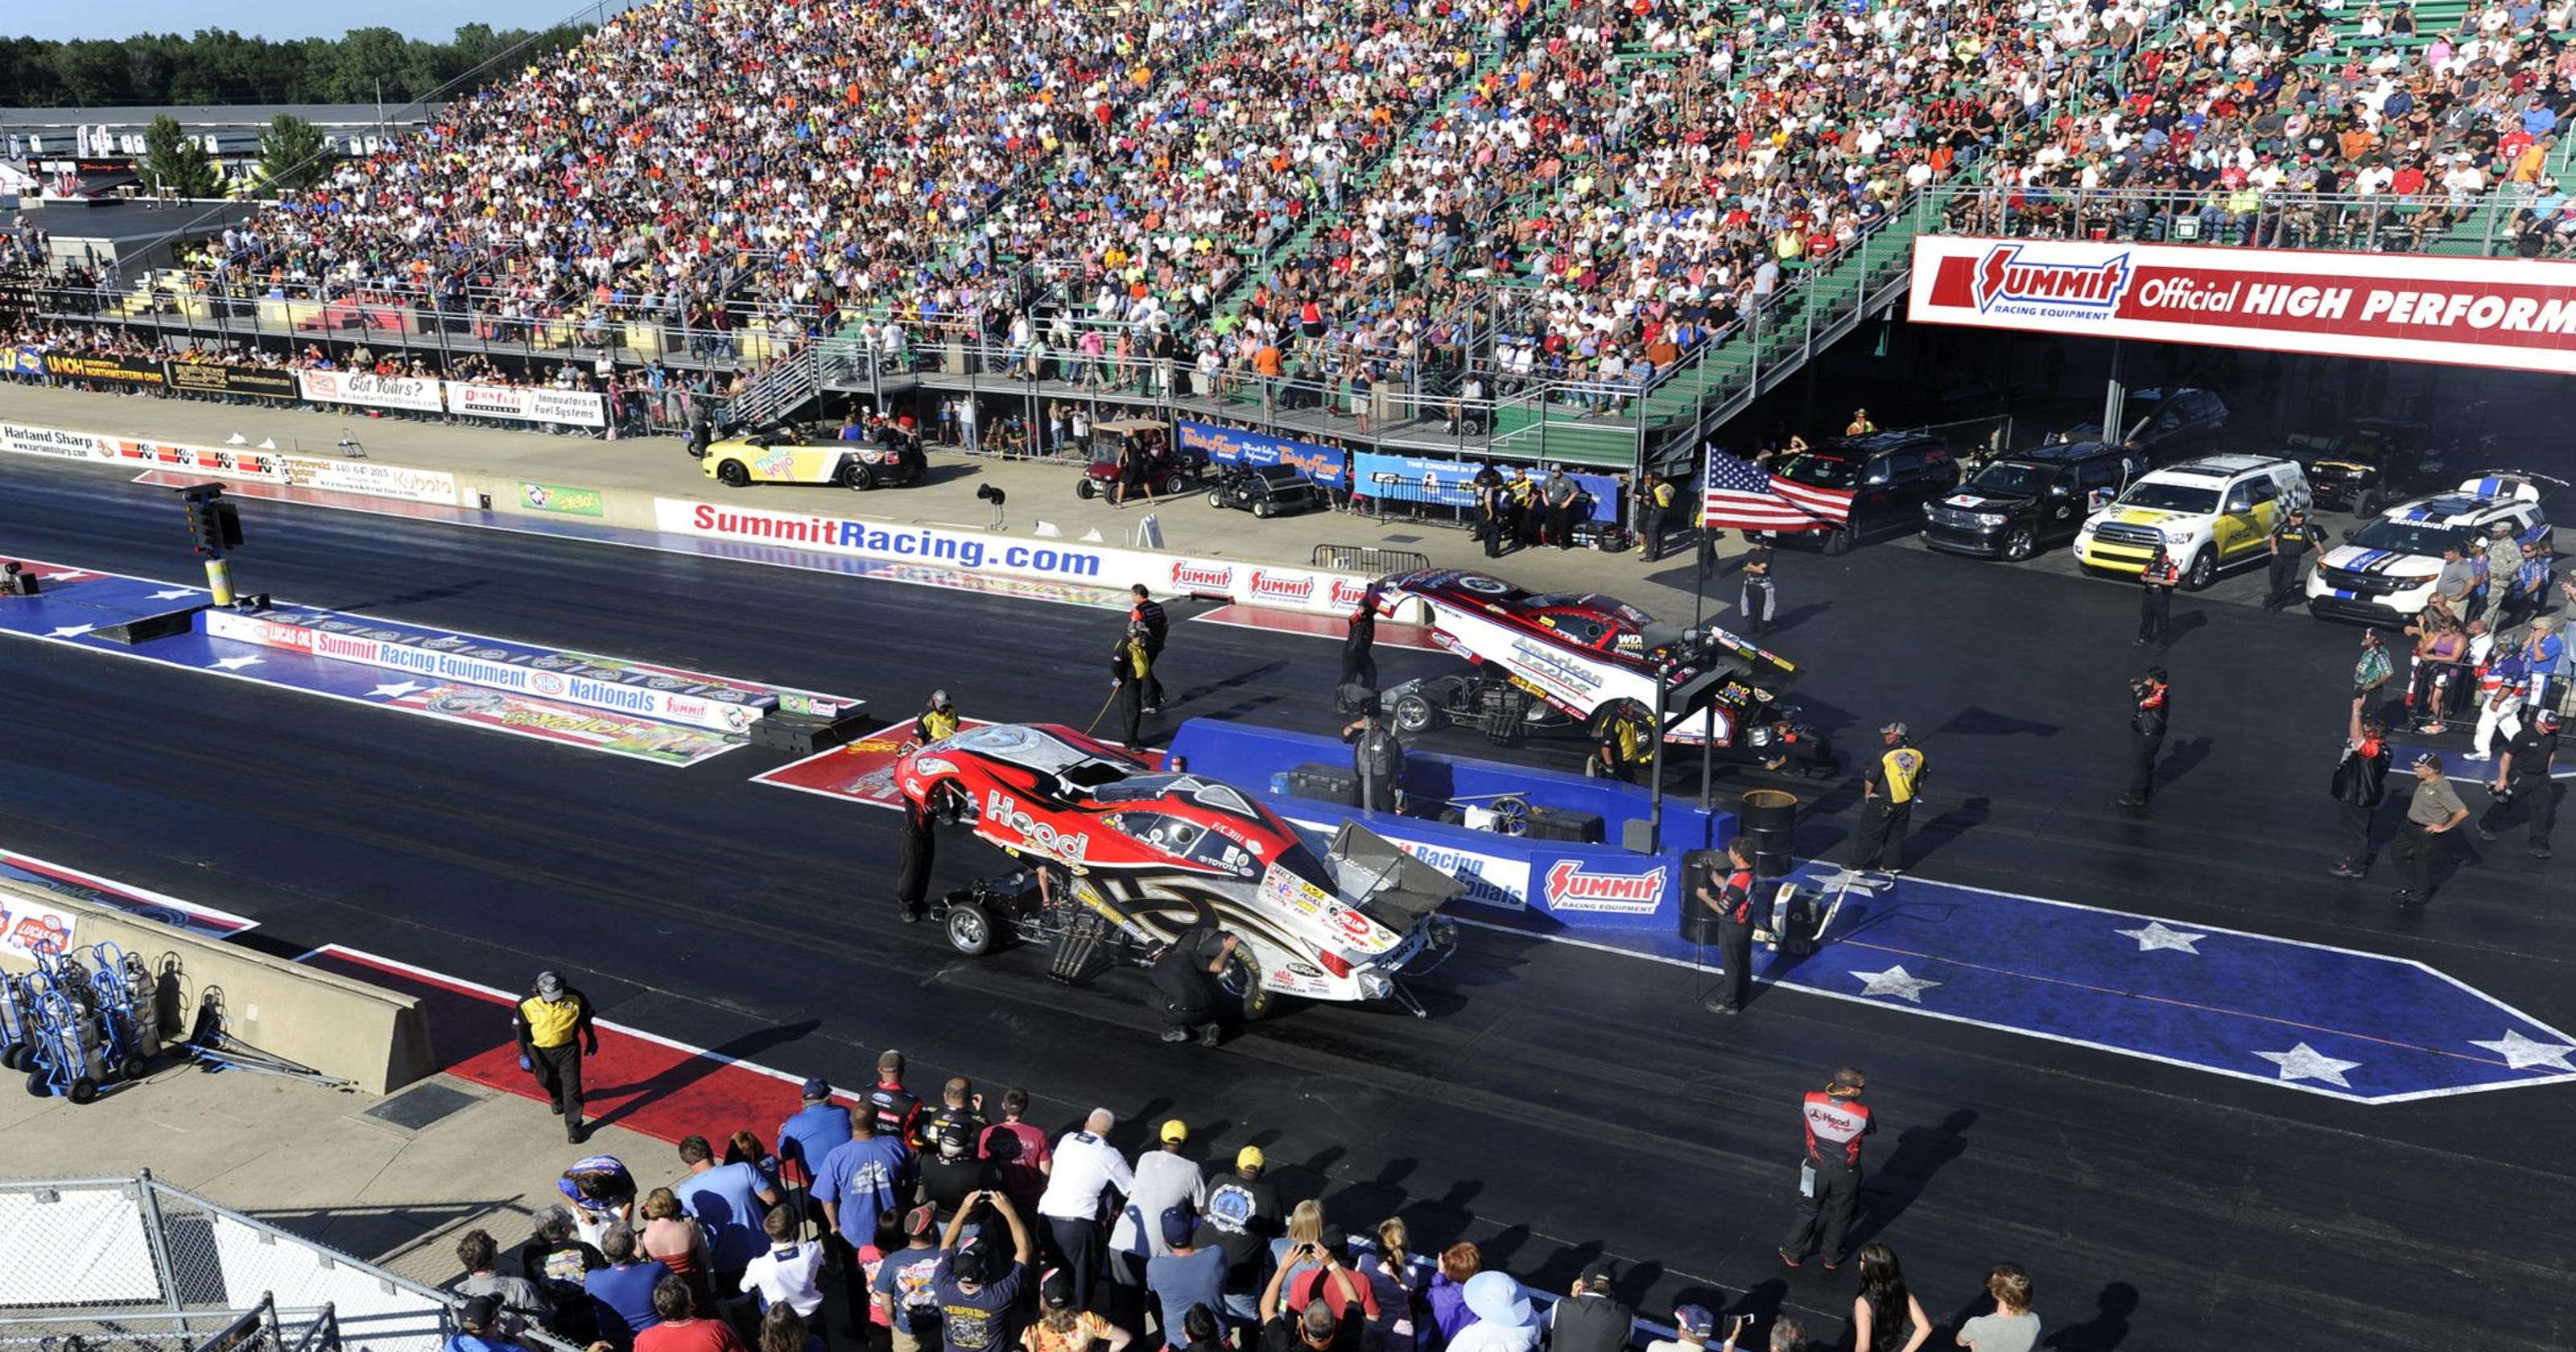 Norwalk stands out as destination race for NHRA